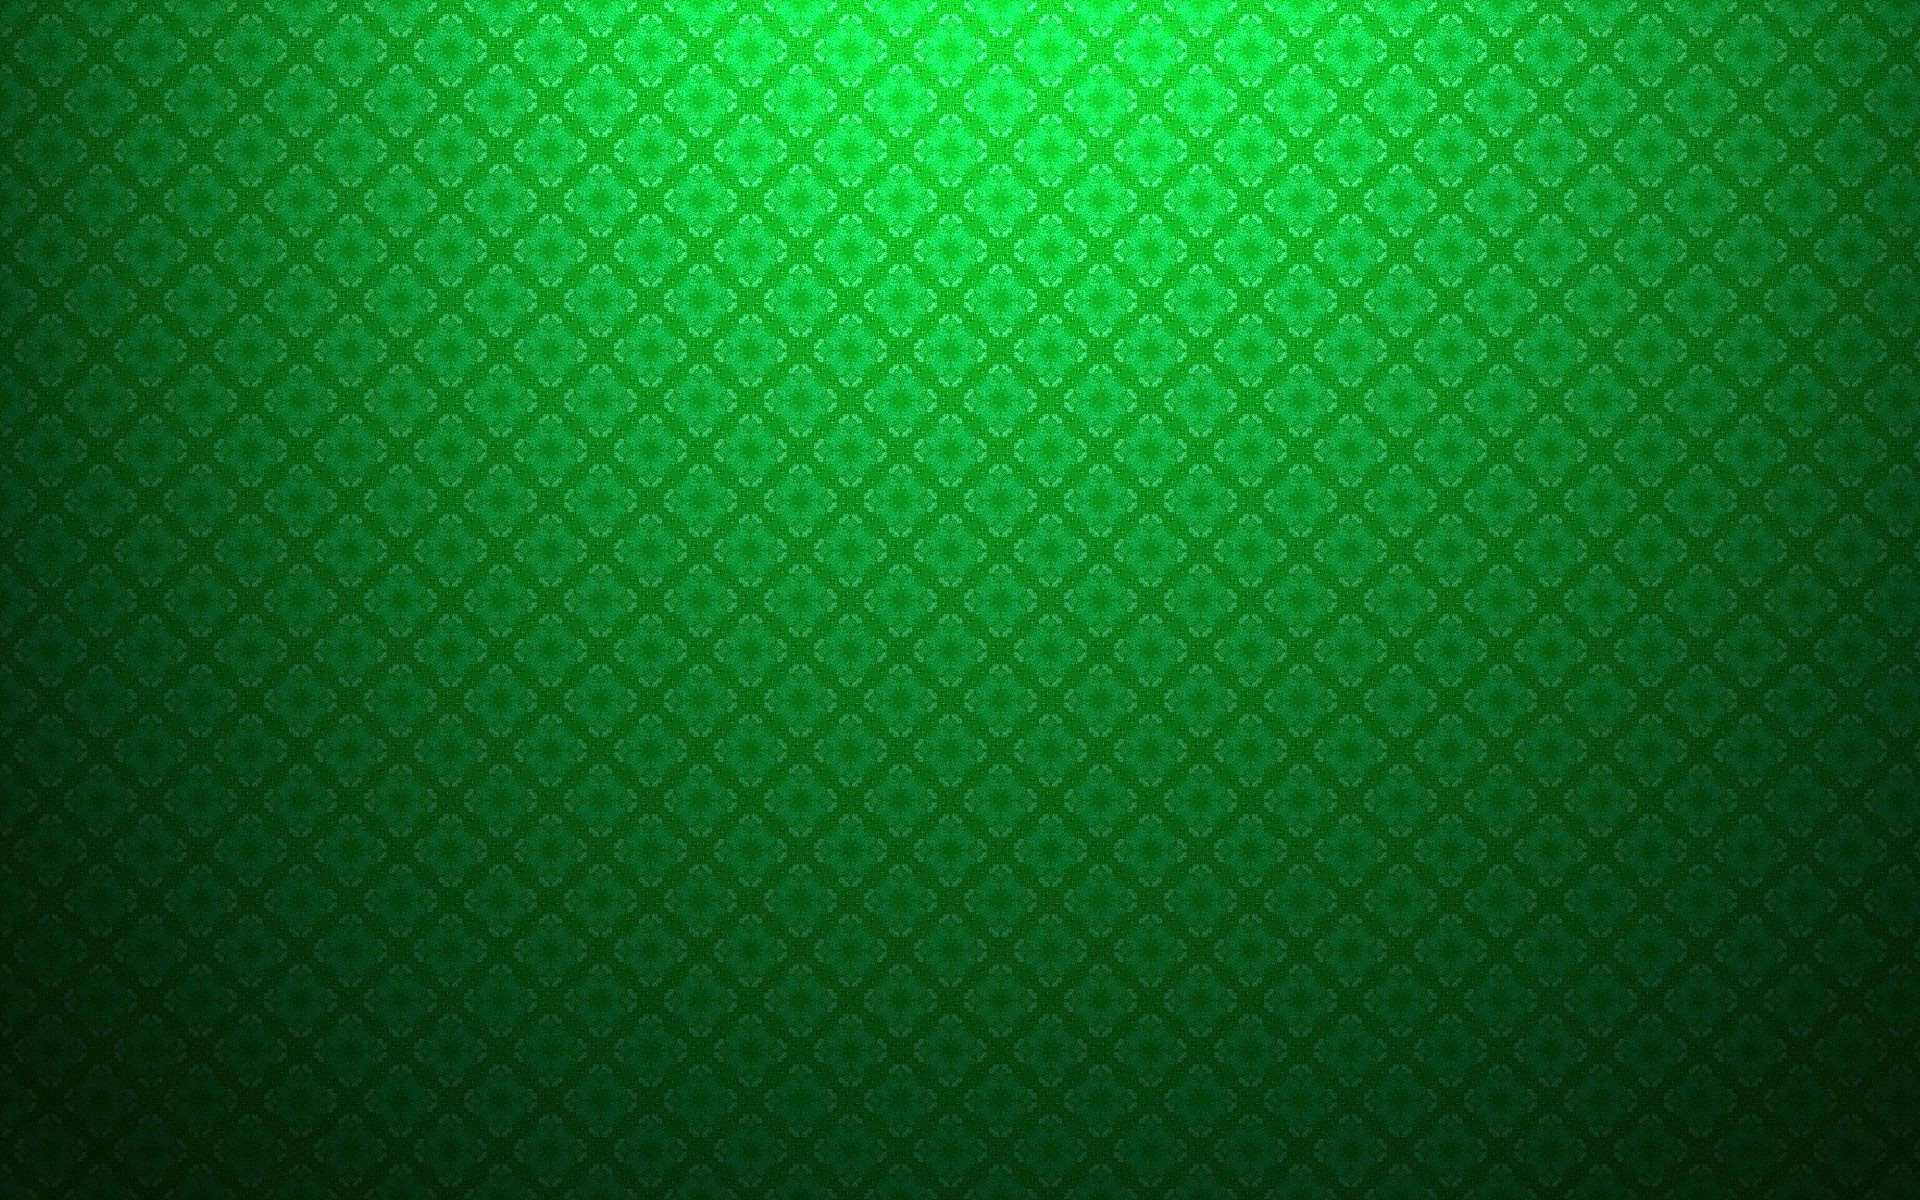 Light Green Backgrounds  wallpaper  Leaves Wallpaper Backgrounds 1920x1200